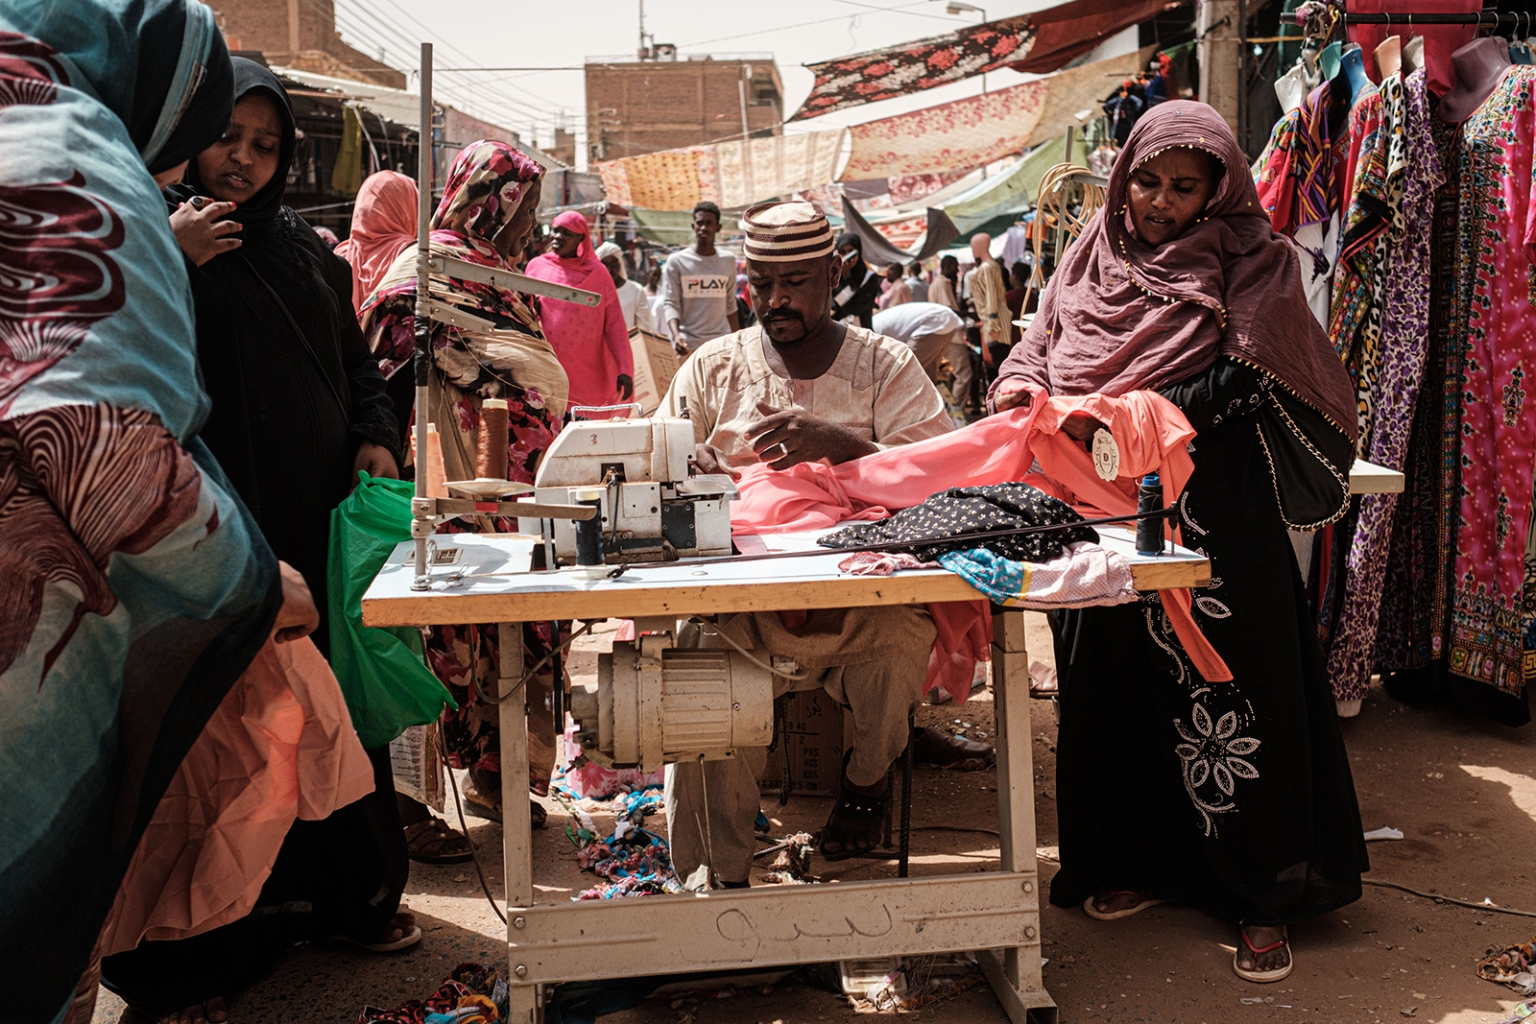 A tailor works with customers at a market street in Omdurman, the twin city of the Sudanese capital Khartoum, on June 13. YASUYOSHI CHIBA/AFP/Getty Images